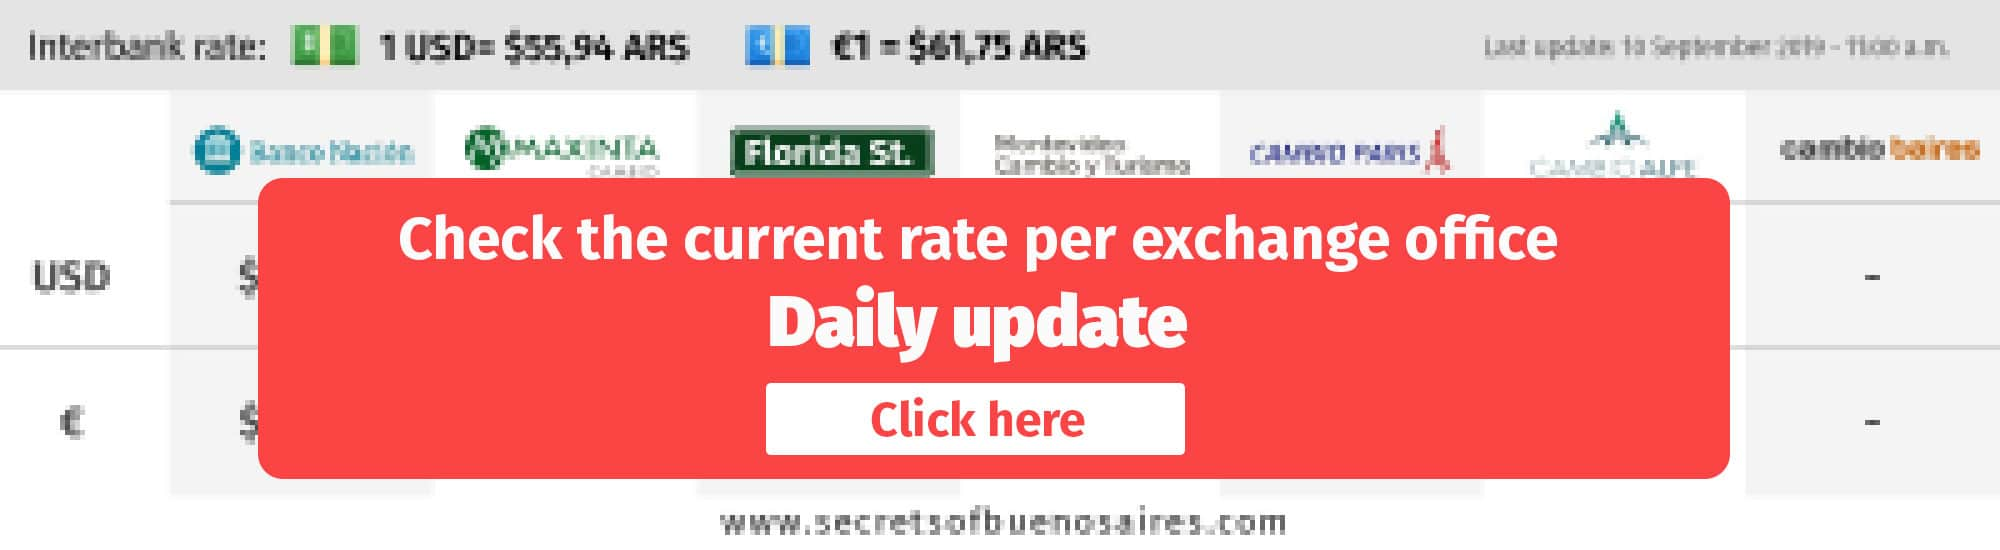 Daily-update-exchange-rate-Buenos-Aires